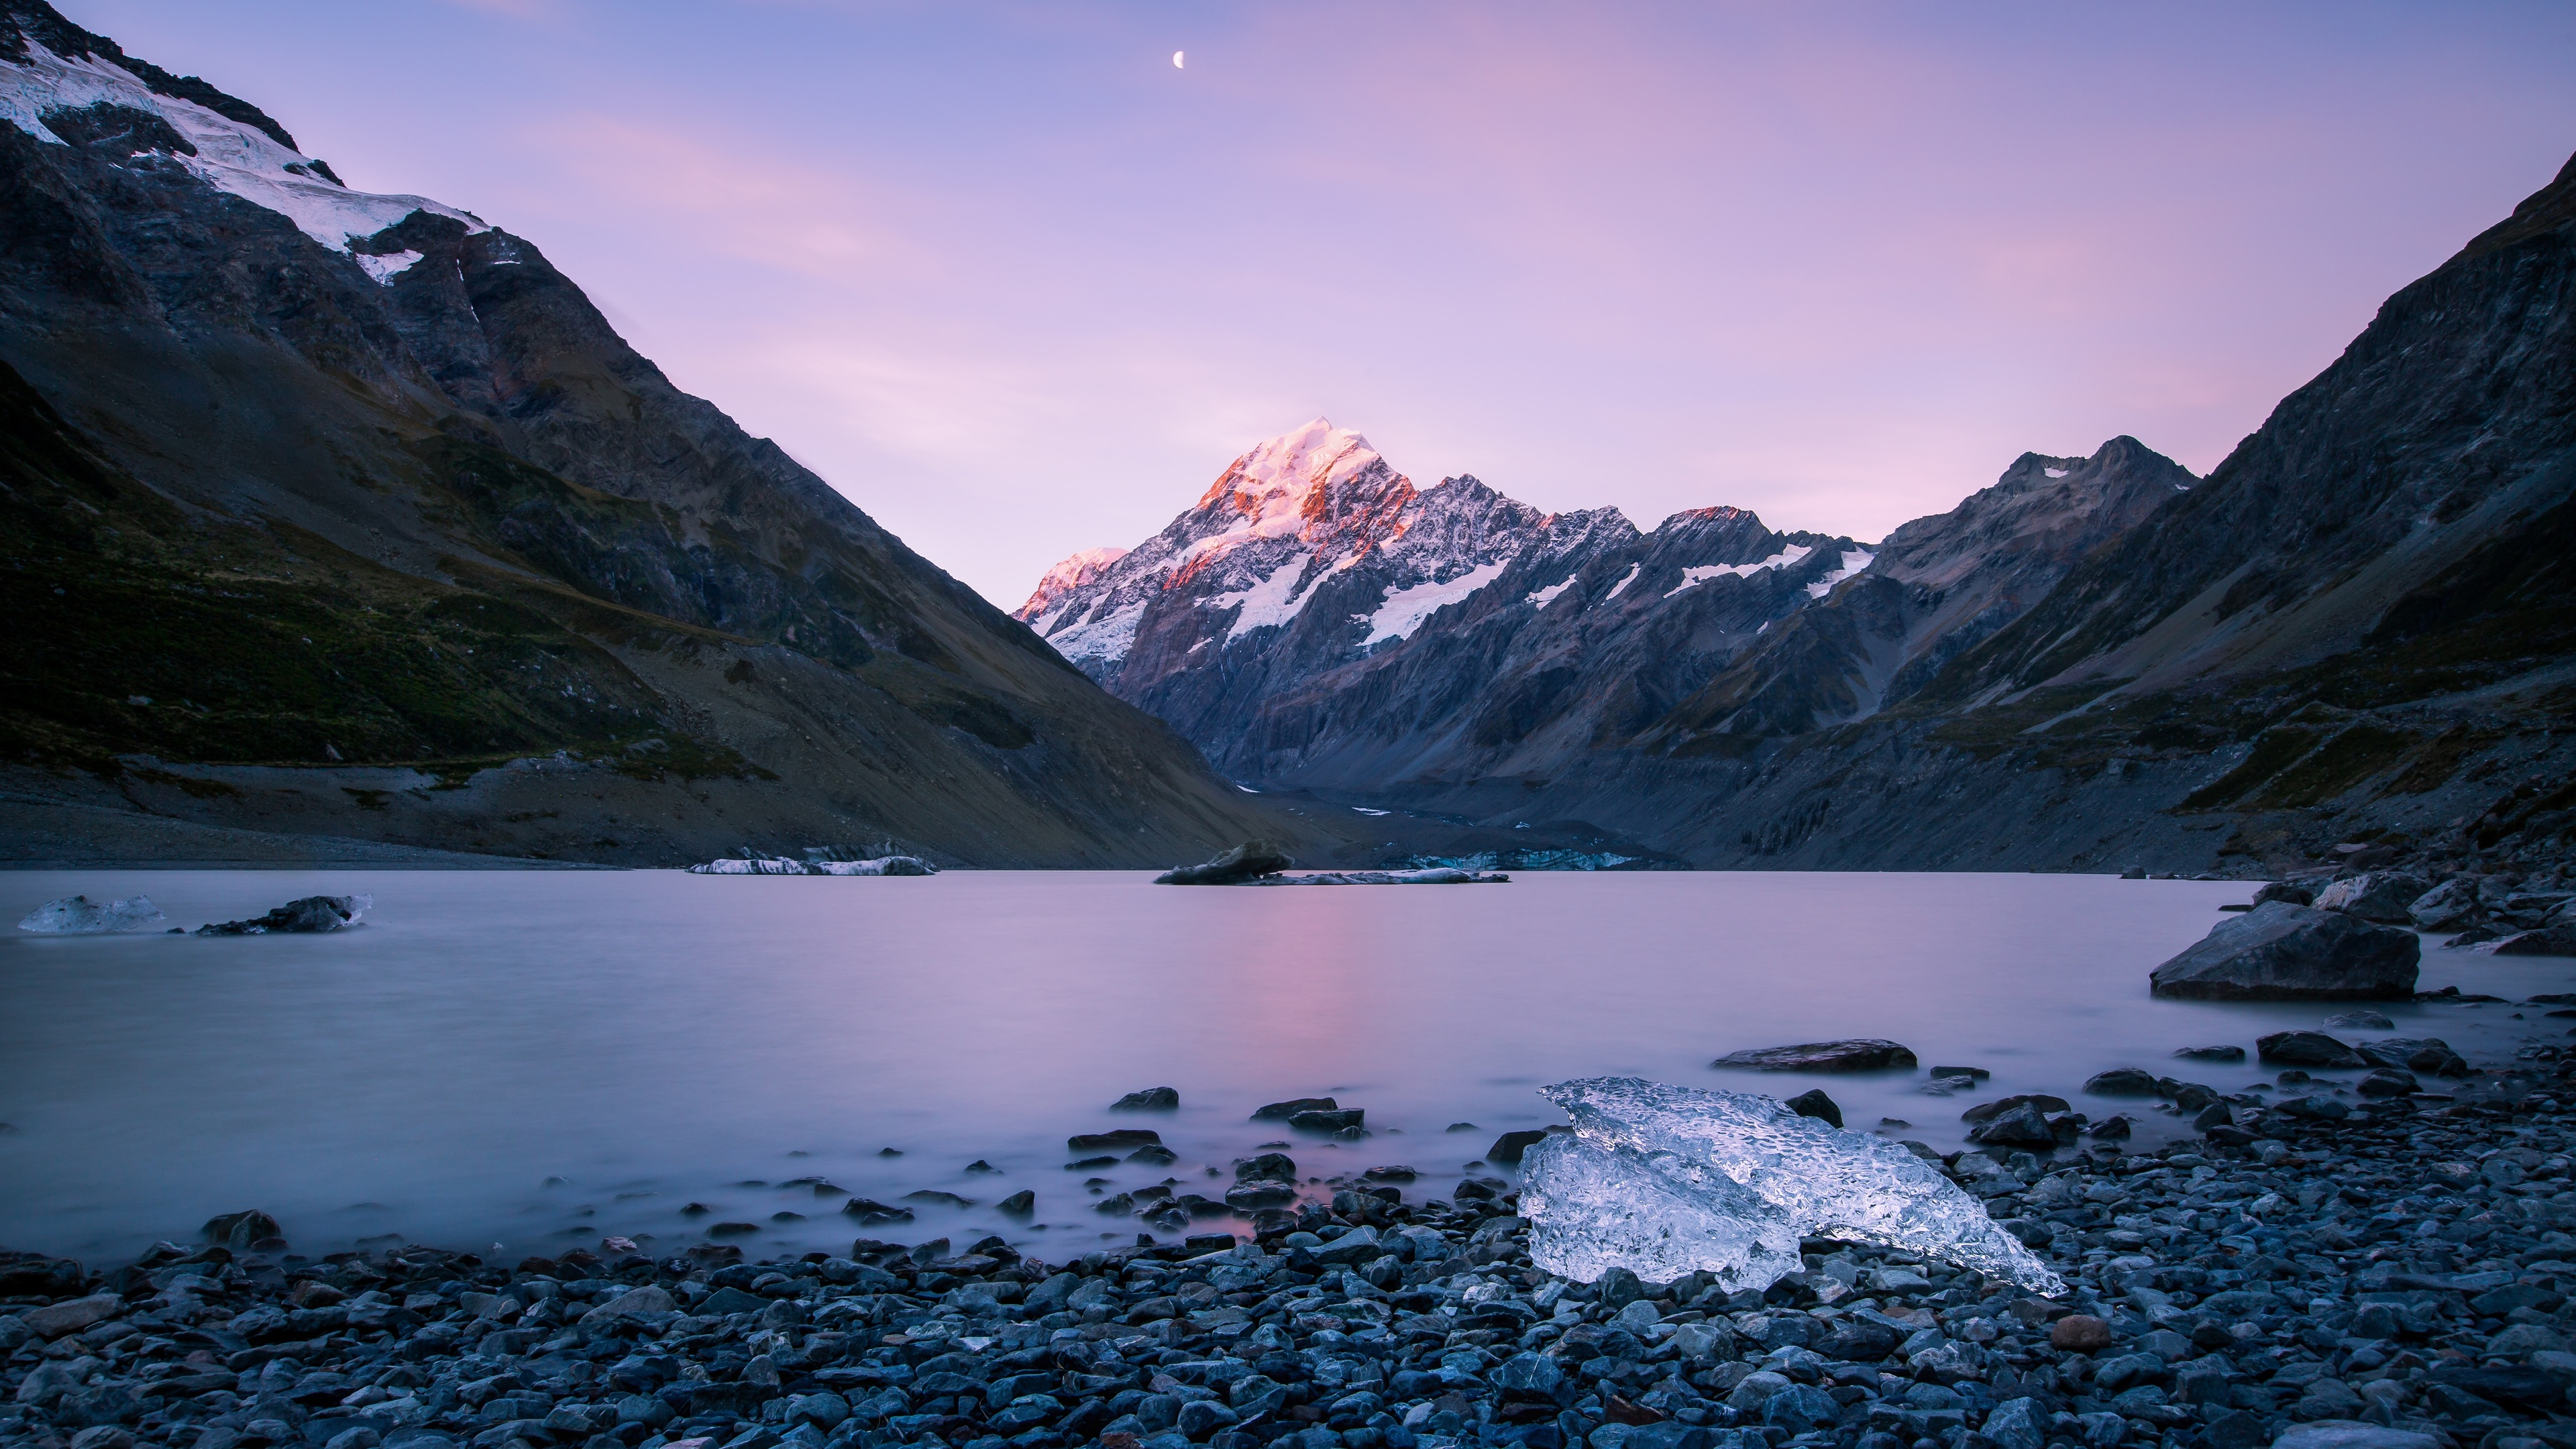 new zealand mountains landscape sky ocean 5k 1540140941 - New Zealand Mountains Landscape Sky Ocean 5k - sky wallpapers, ocean wallpapers, nature wallpapers, mountains wallpapers, landscape wallpapers, hd-wallpapers, 5k wallpapers, 4k-wallpapers